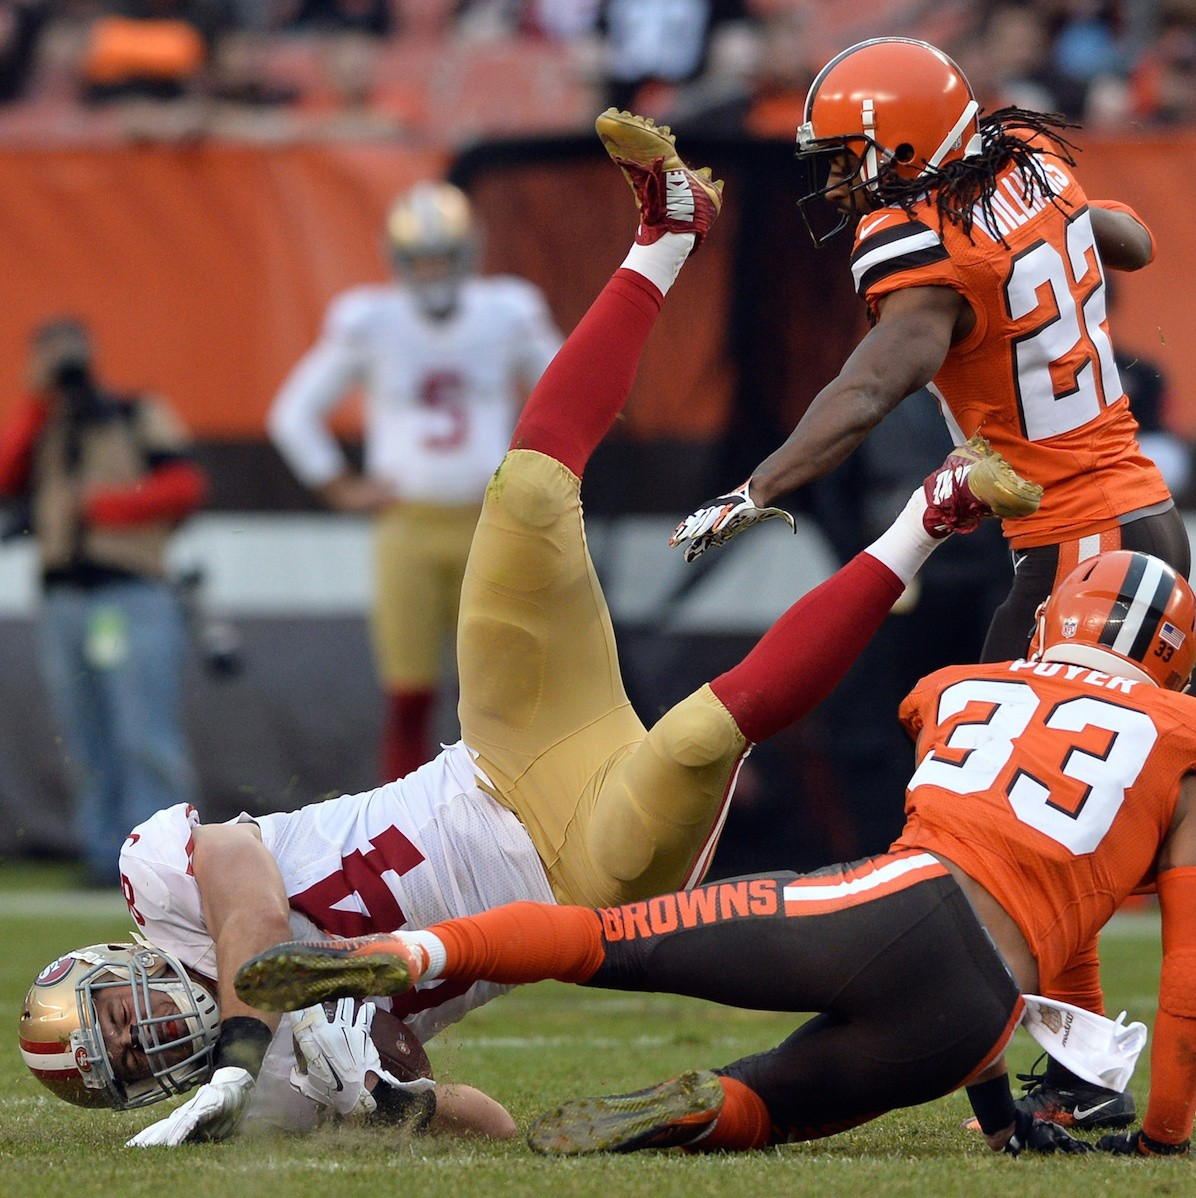 The-san-francisco-49ers-could-learn-something-from-the-browns-1482163025.jpg?crop=0.6647173489278753xw:1xh;0